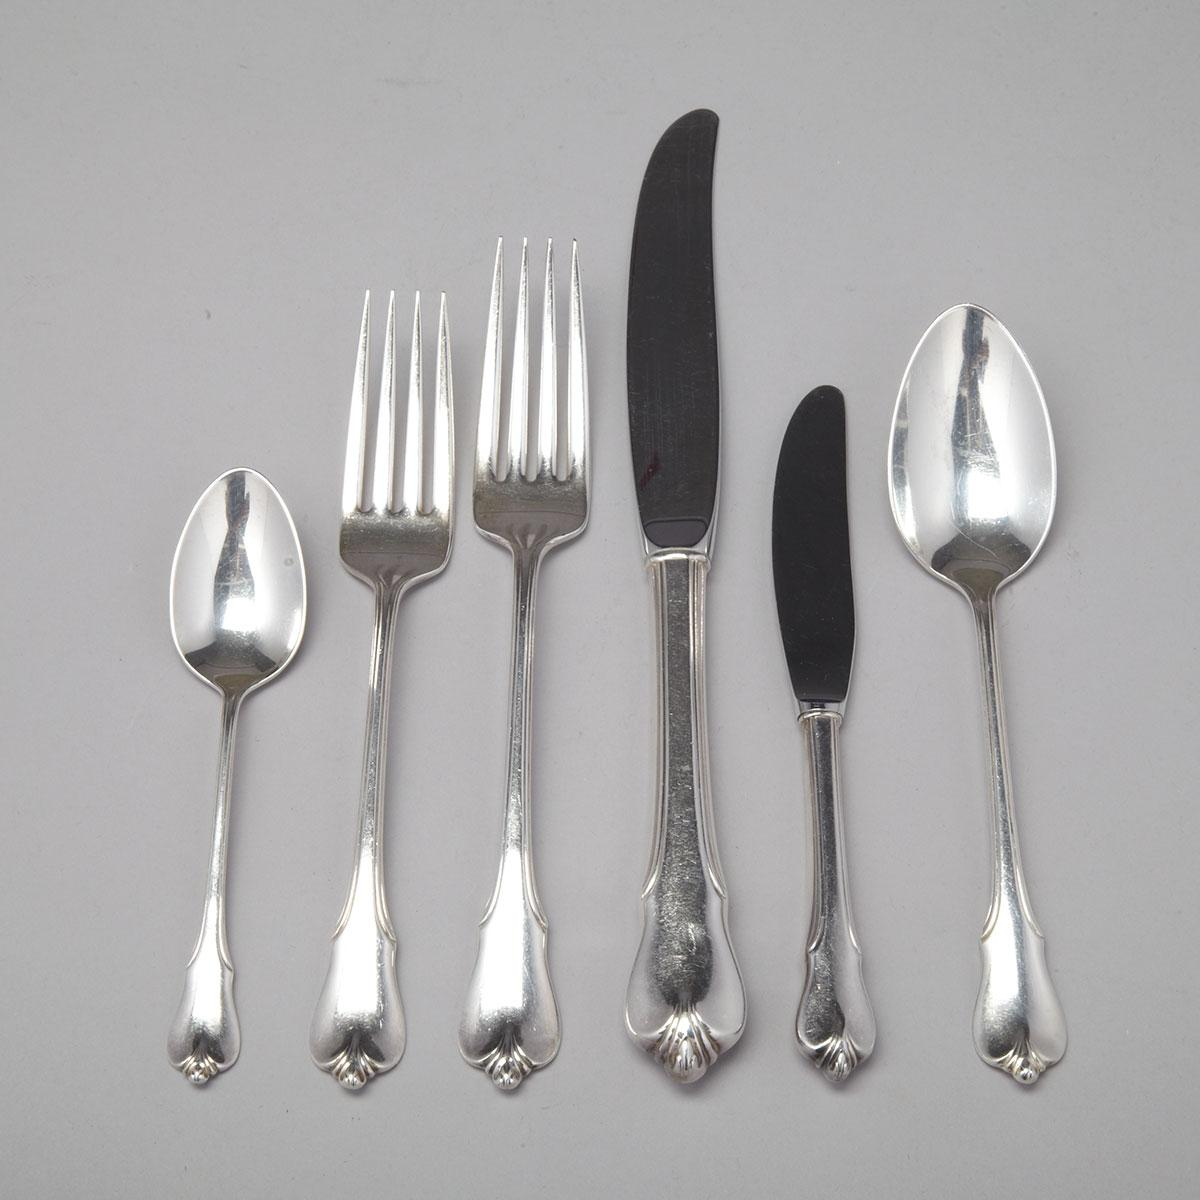 American Silver 'Grand Colonial' Pattern Flatware Service, Wallace Silversmiths, Wallingford, Ct., 20th century